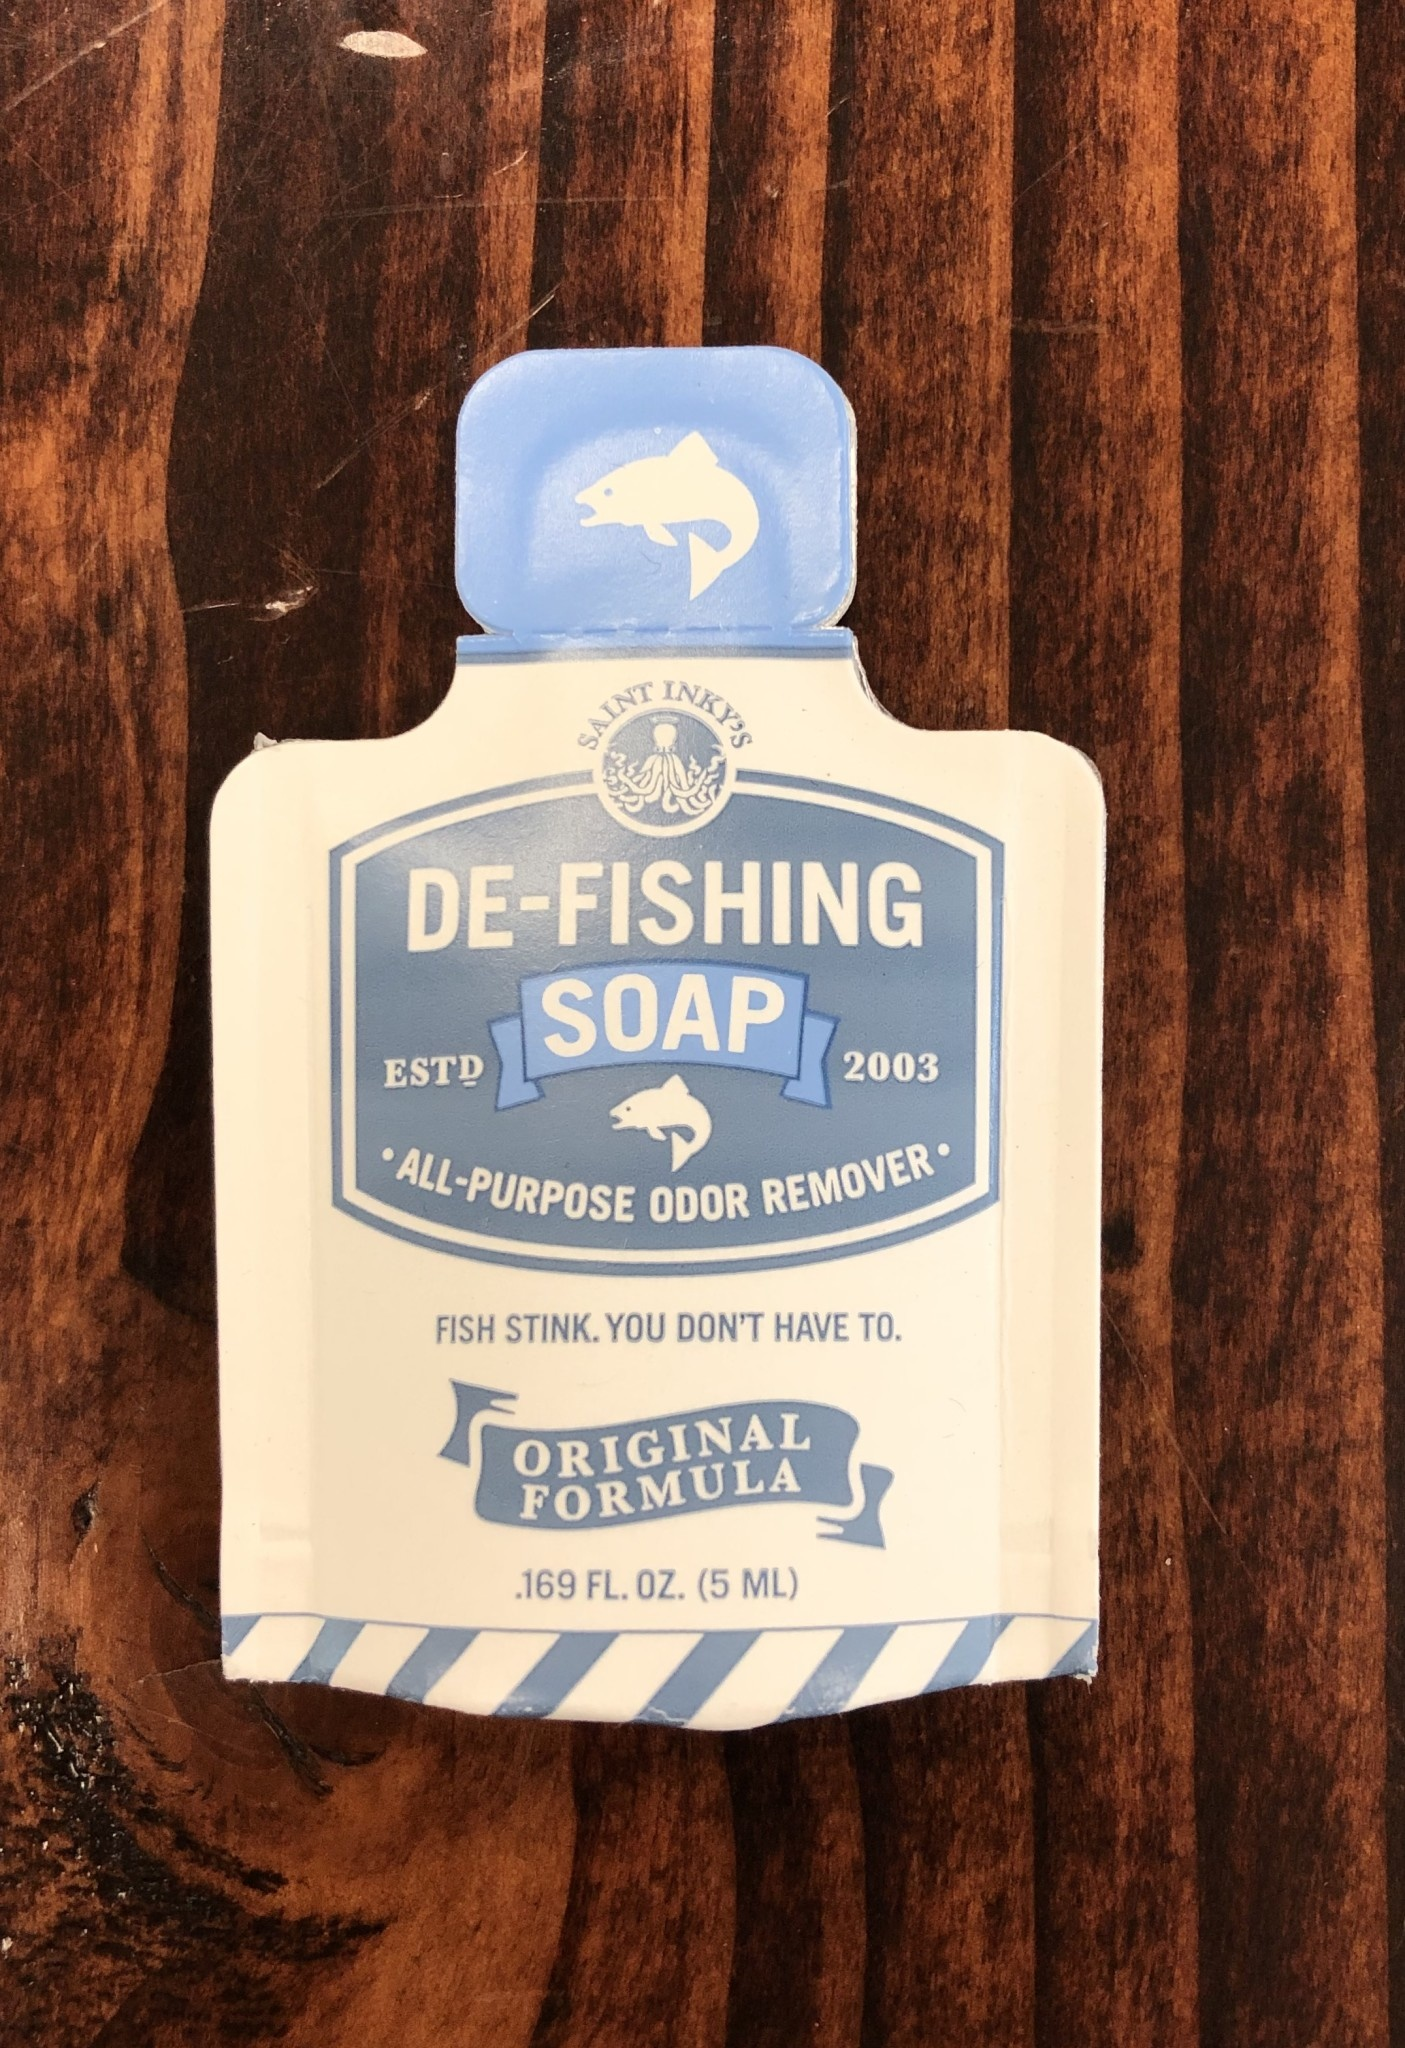 De-Fishing Soap De-Fishing Soap Pocket Pack